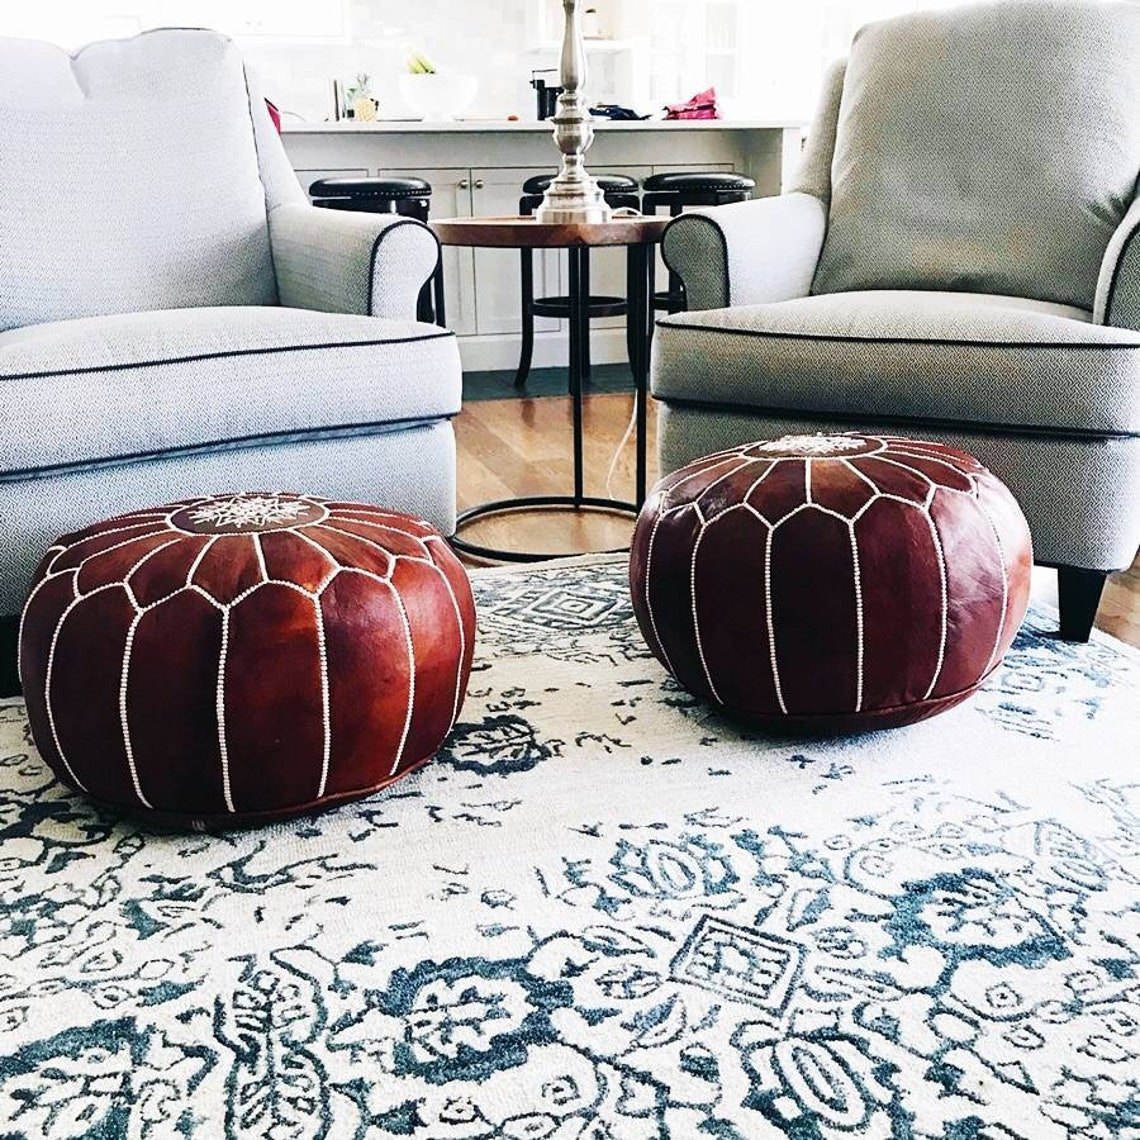 Set of 2 Handmade Moroccan Pouf, Genuine Leather Ottoman, Natural Tan Color Pouffe unstuffed  Footstool